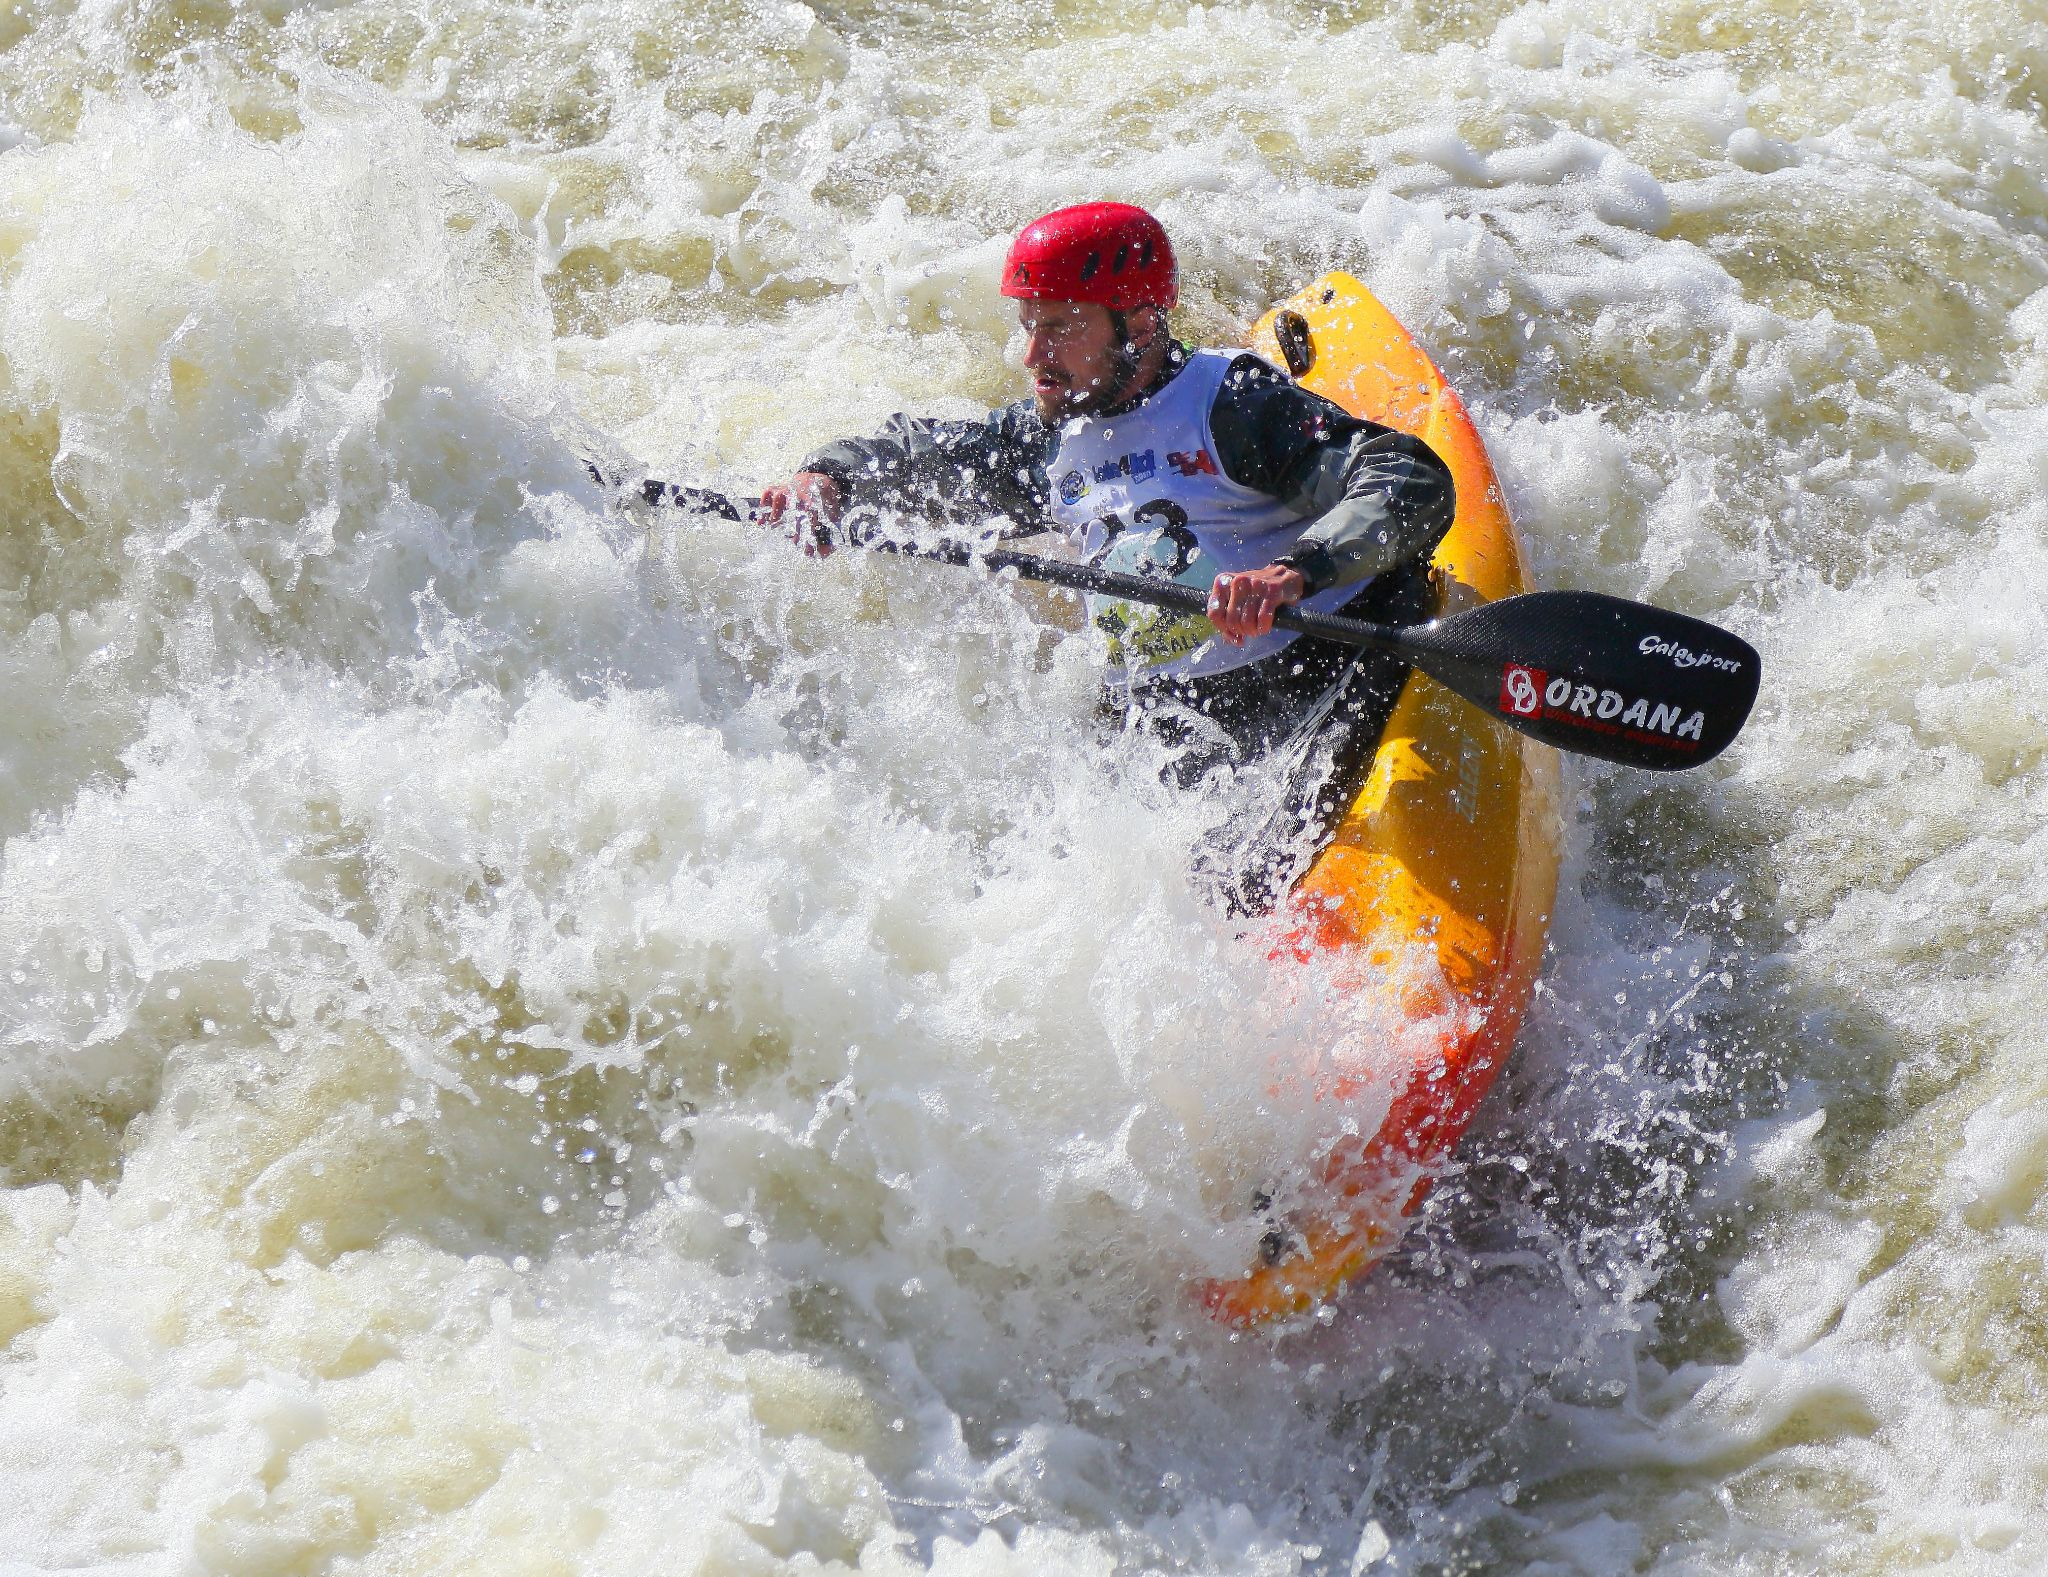 whitewater rafting is an adventure gift for men